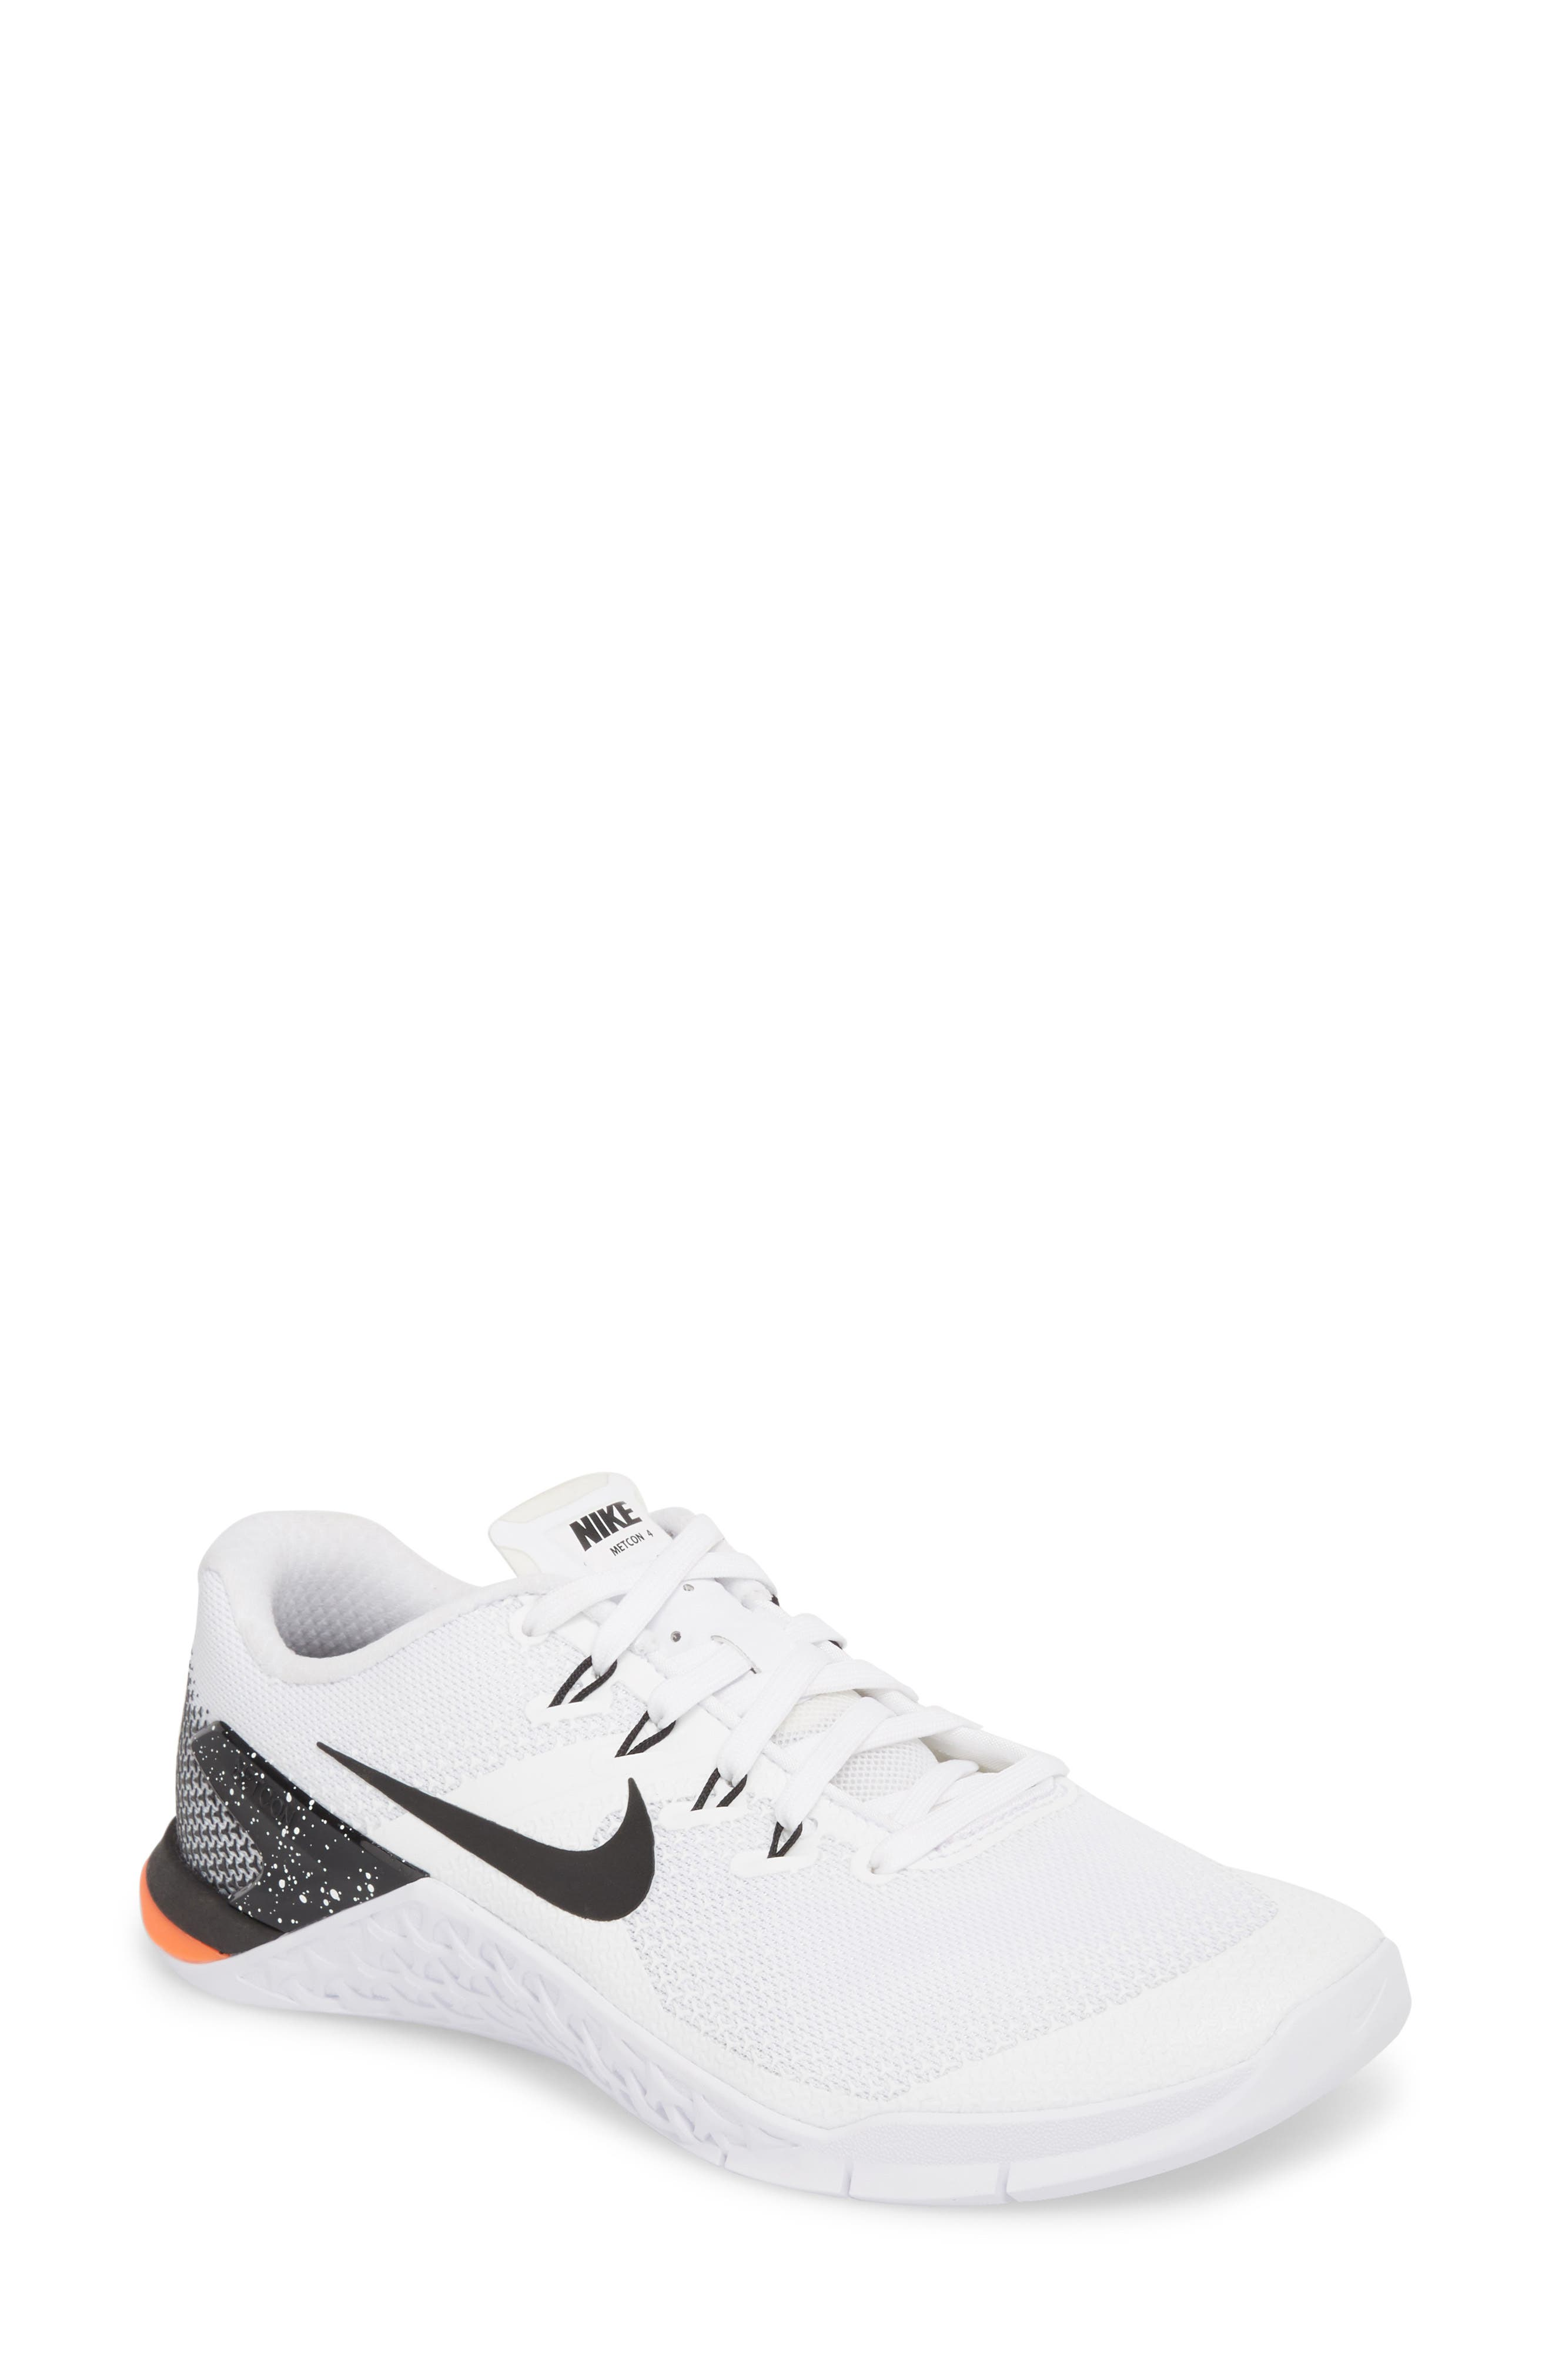 Metcon 4 Training Shoe,                             Main thumbnail 6, color,